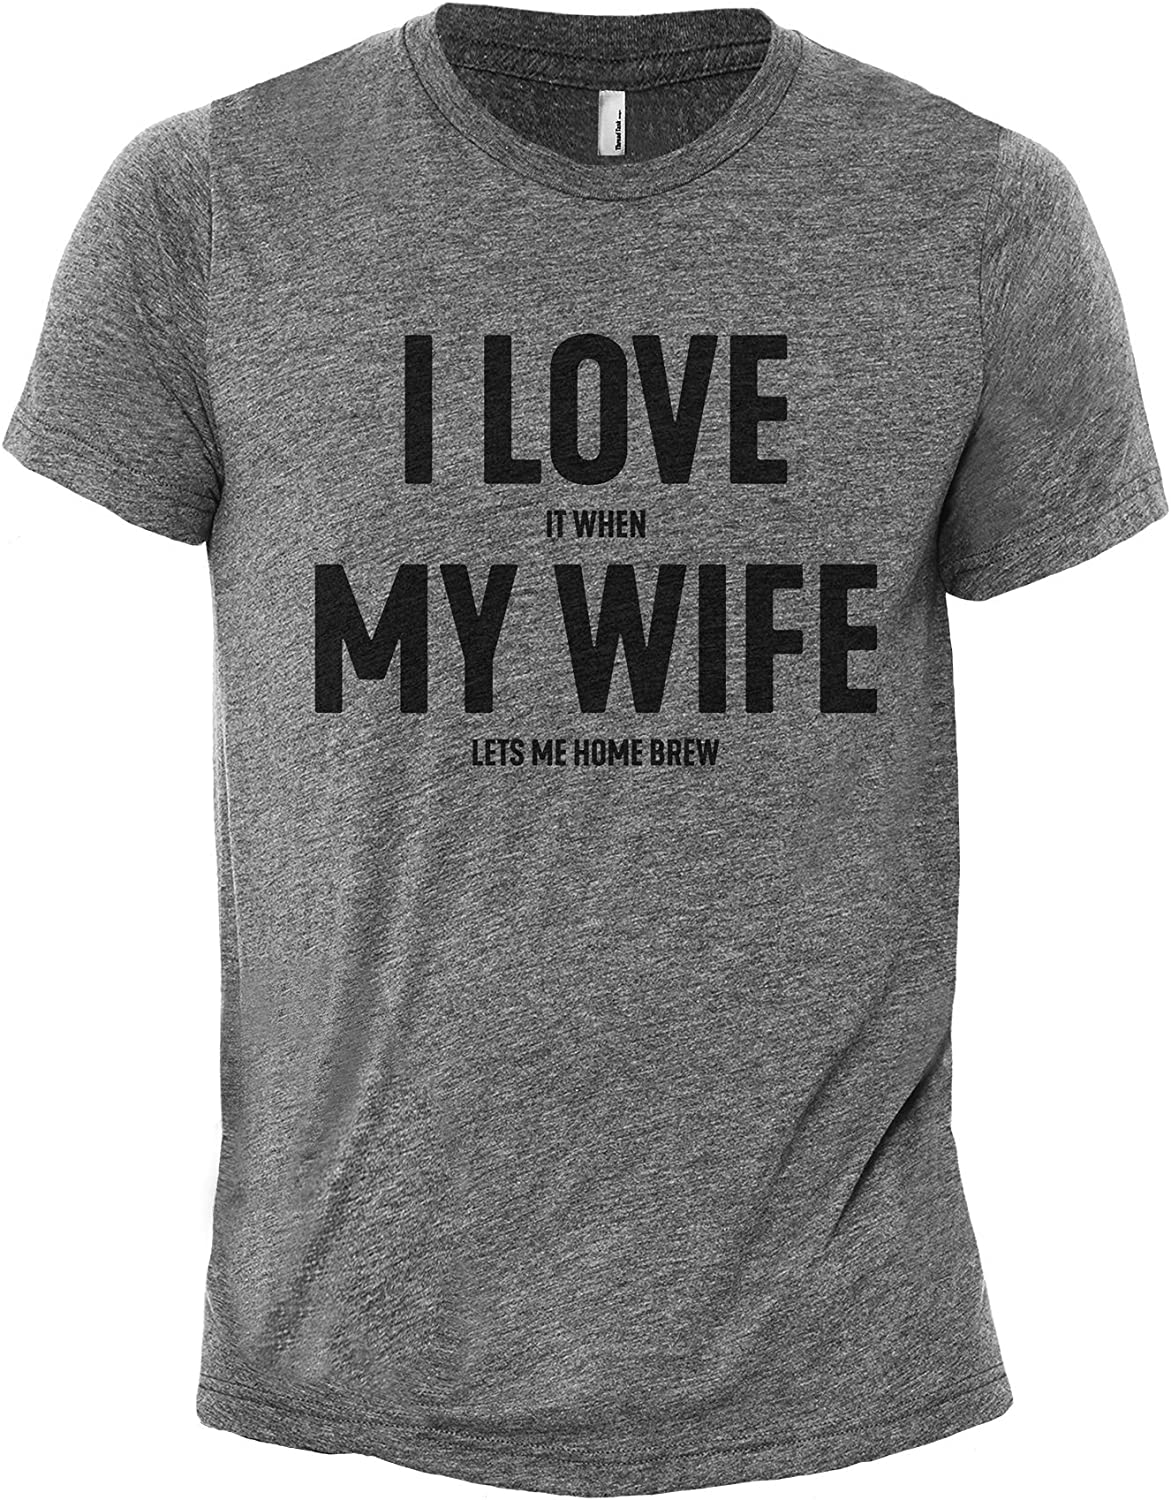 I Love It When My Wife Lets Me Home Brew Men's Modern Fit Fun Casual T-Shirt Printed Graphic Tee